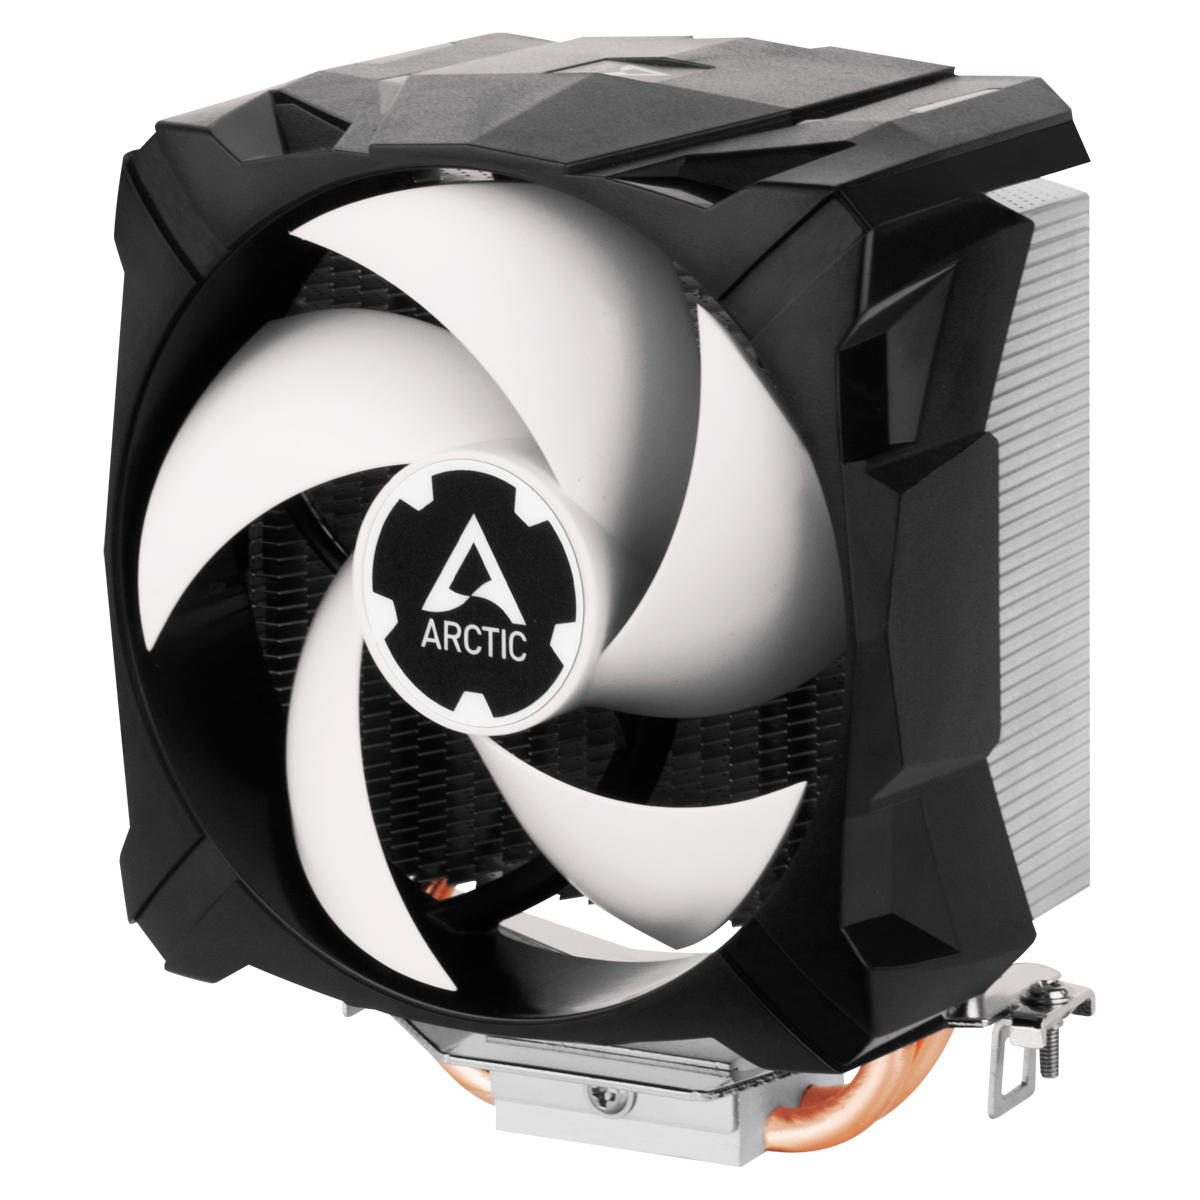 Arctic Launches Freezer 7 X CPU Cooler With Intel LGA1200 Support  #Technology   https://www.365newsx.com/gb/article/arctic-launches-freezer-7-x-cpu-cooler-with-intel-lga1200-support  …